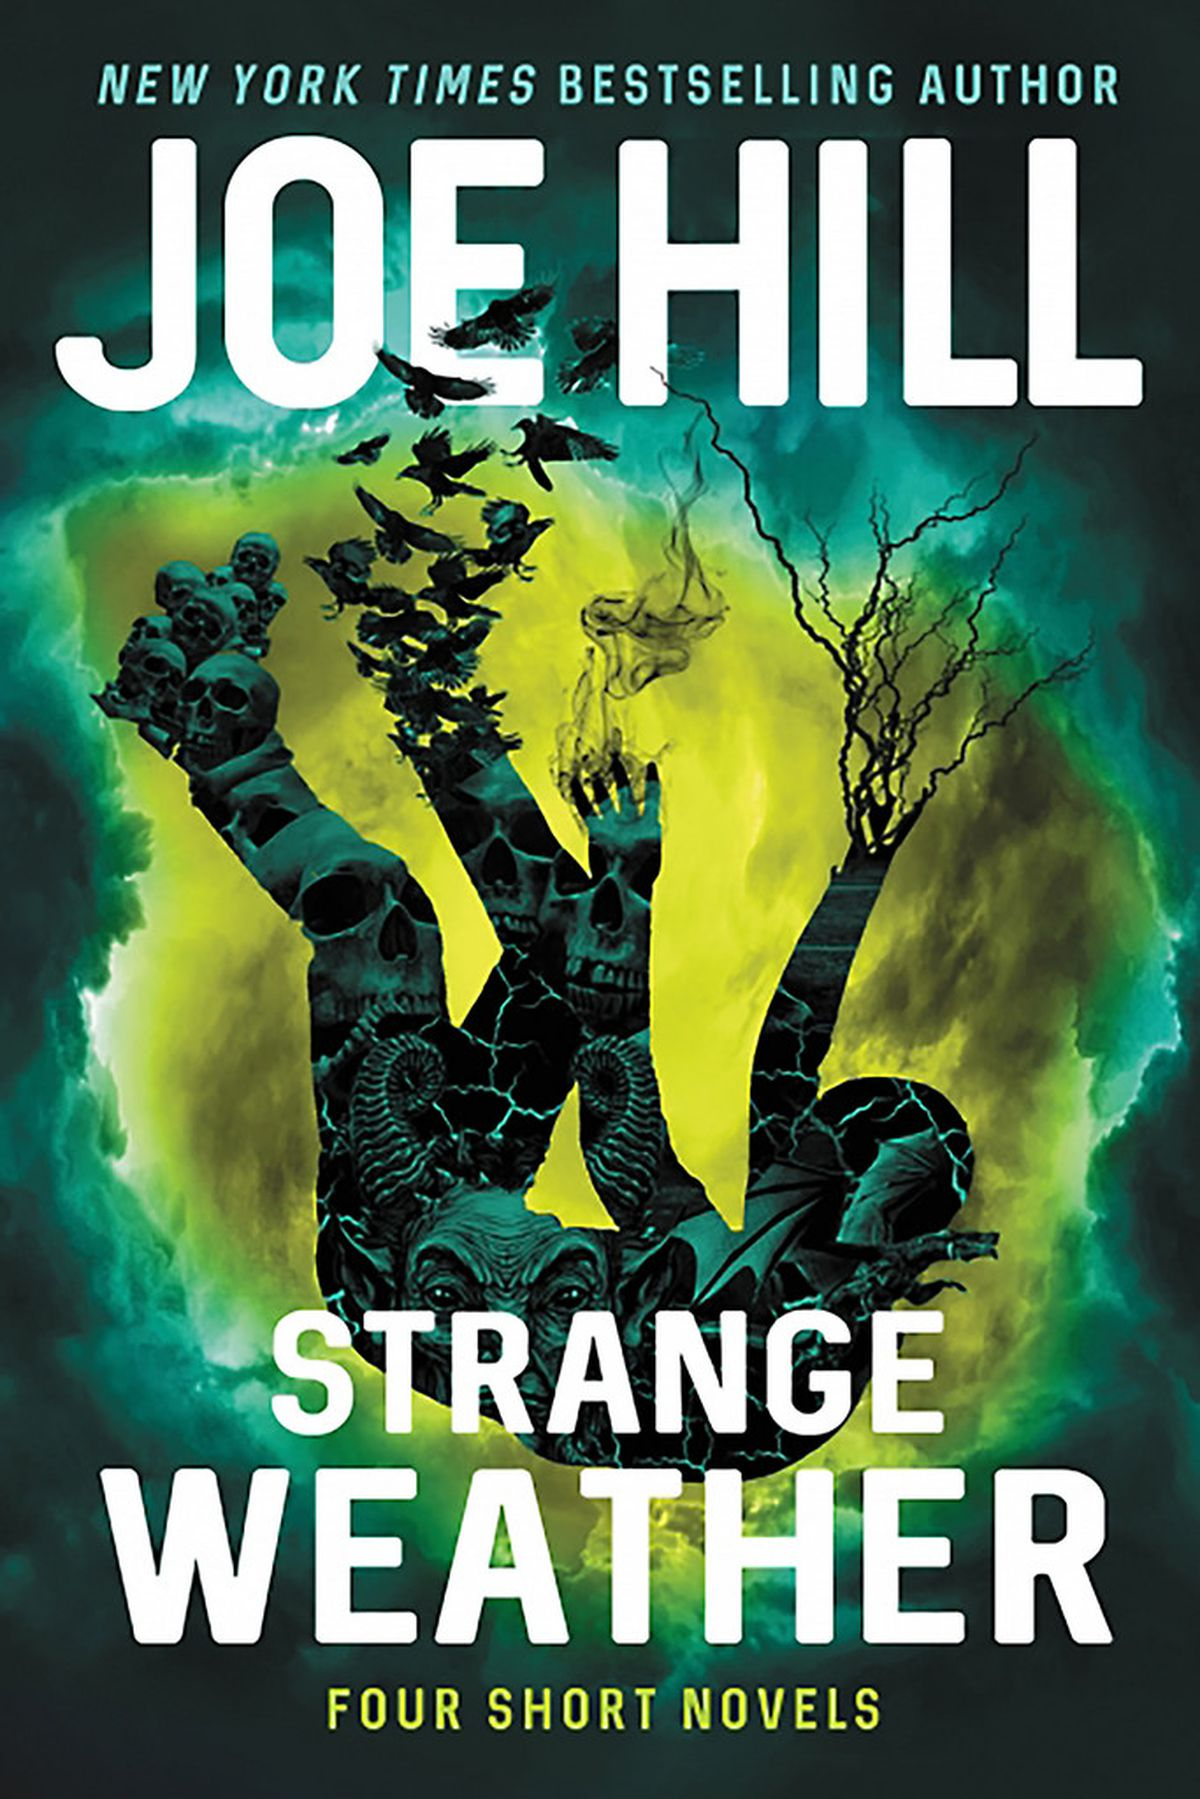 The Best Science Fiction Fantasy And Horror Novels Of